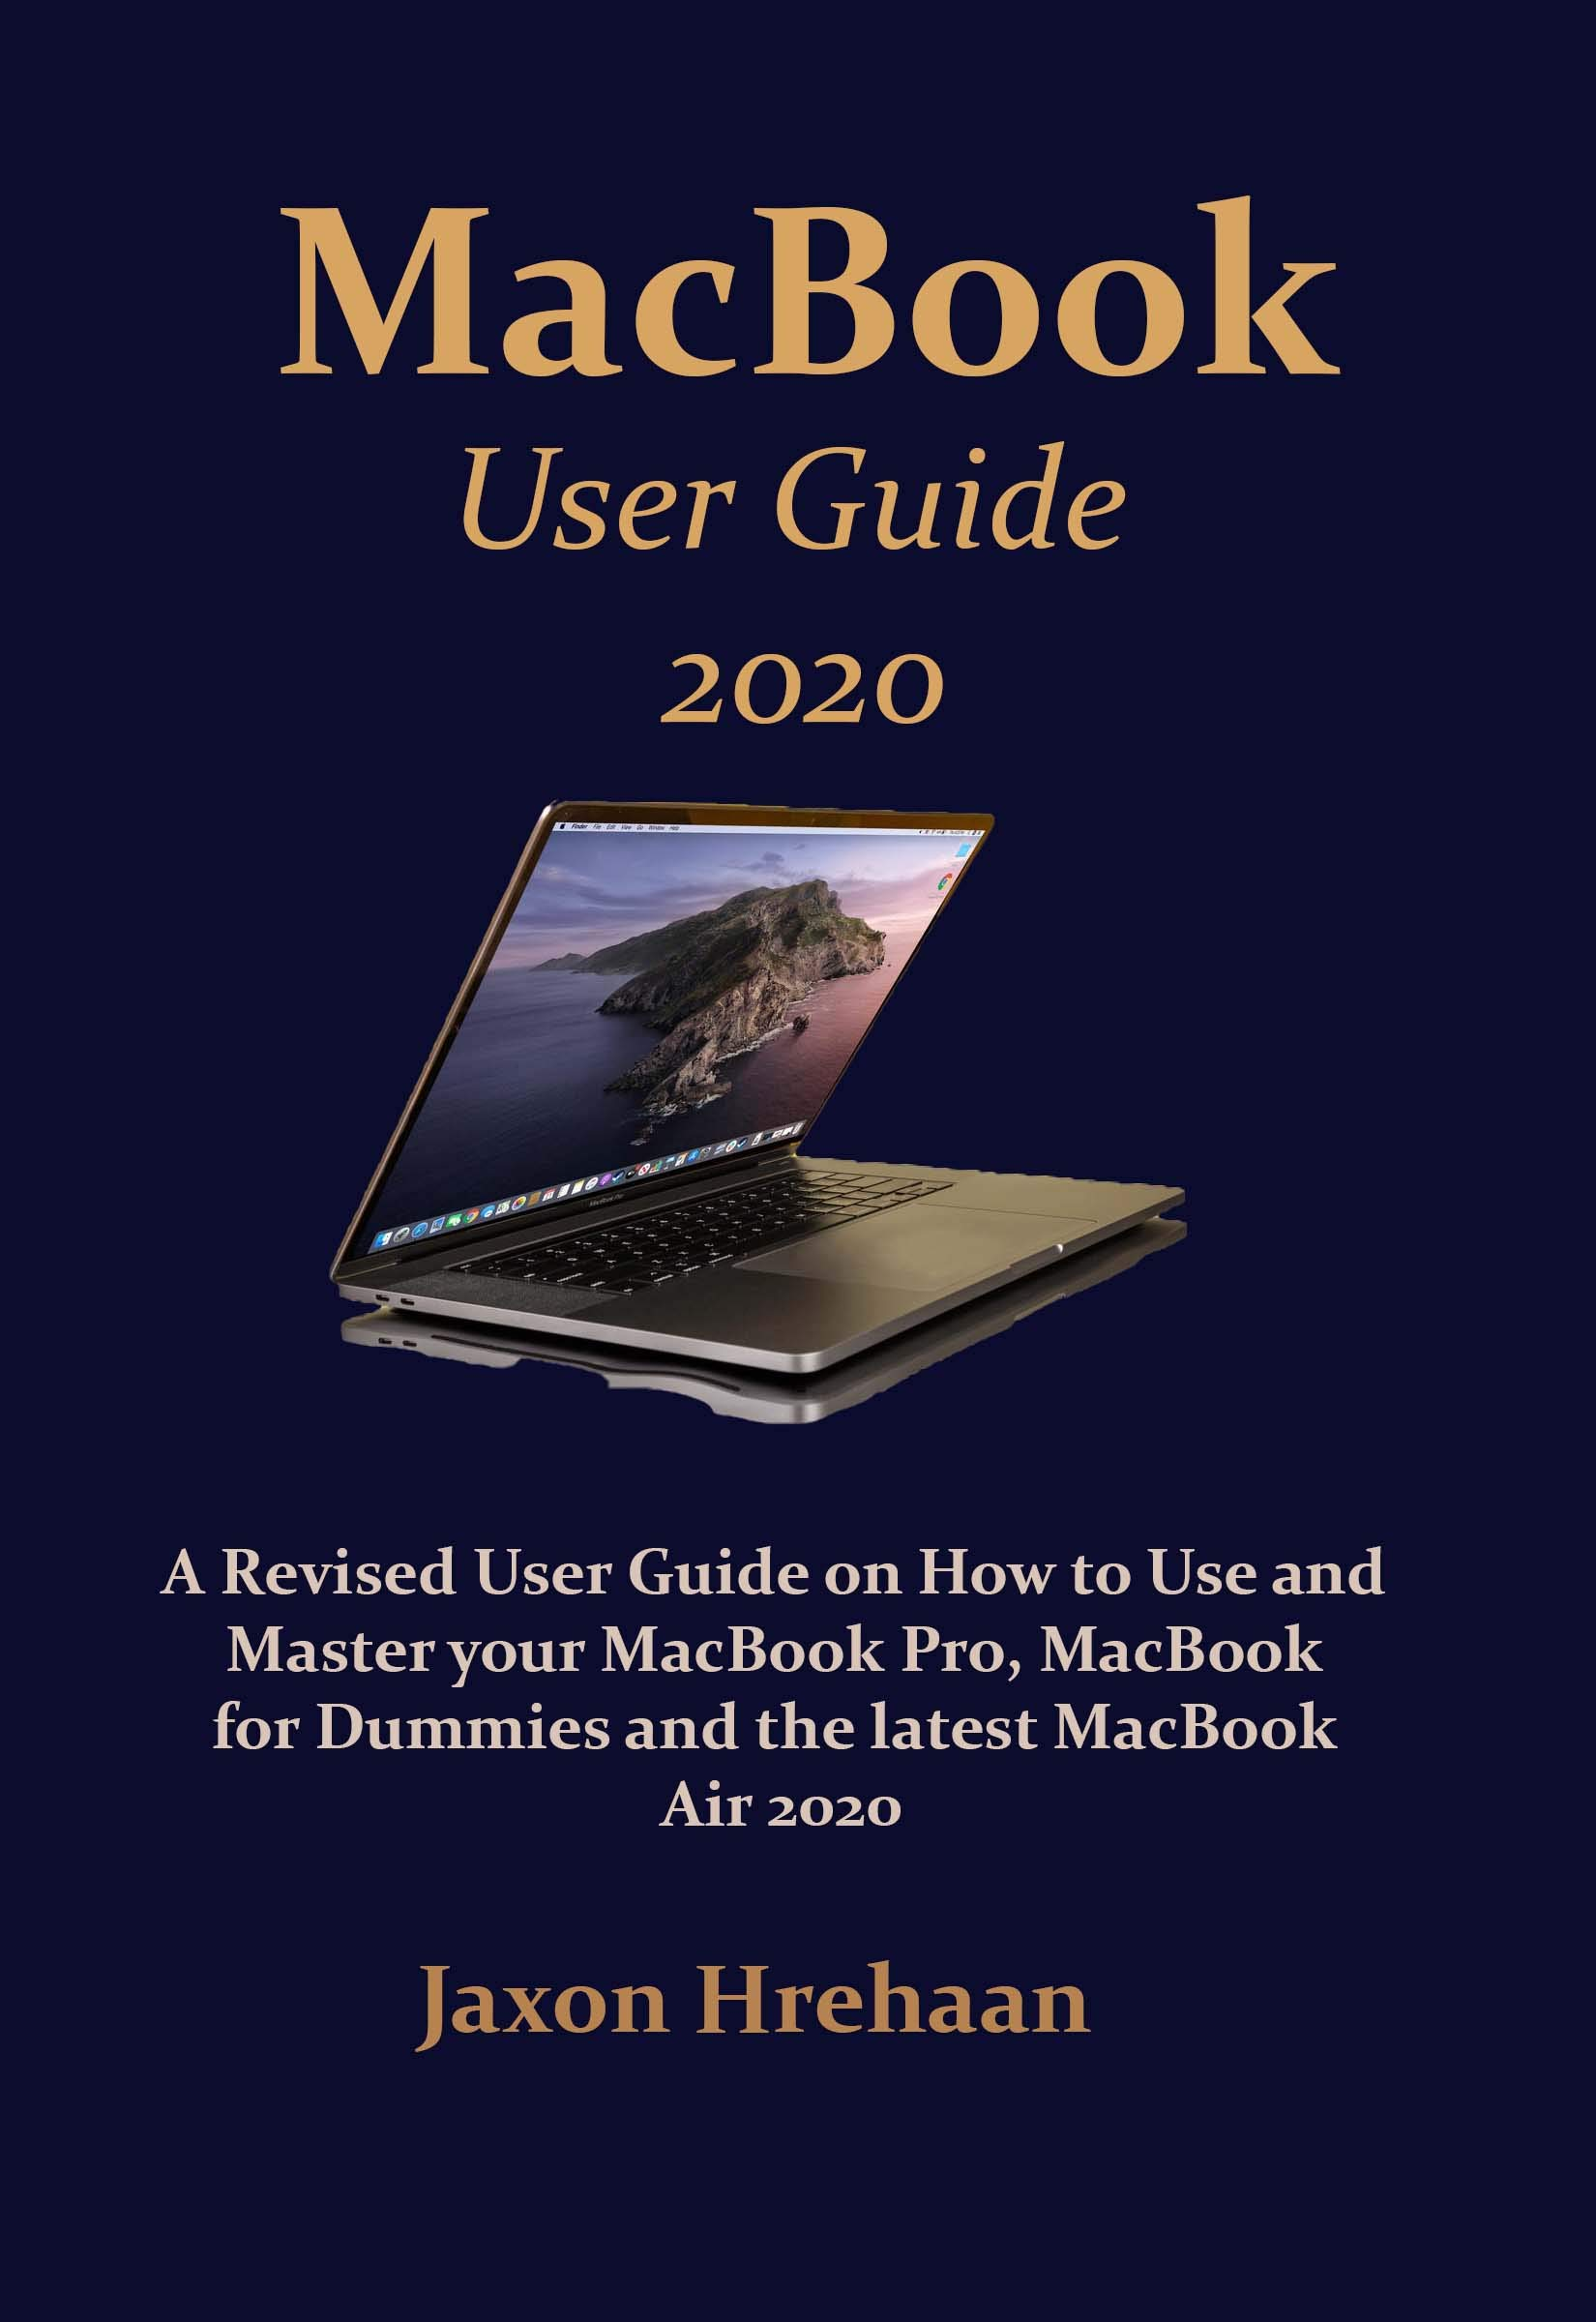 MacBook User Guide 2020: A Revised User Guide on How to Use and Master your MacBook Pro, MacBook for Dummies and the latest MacBook Air 2020